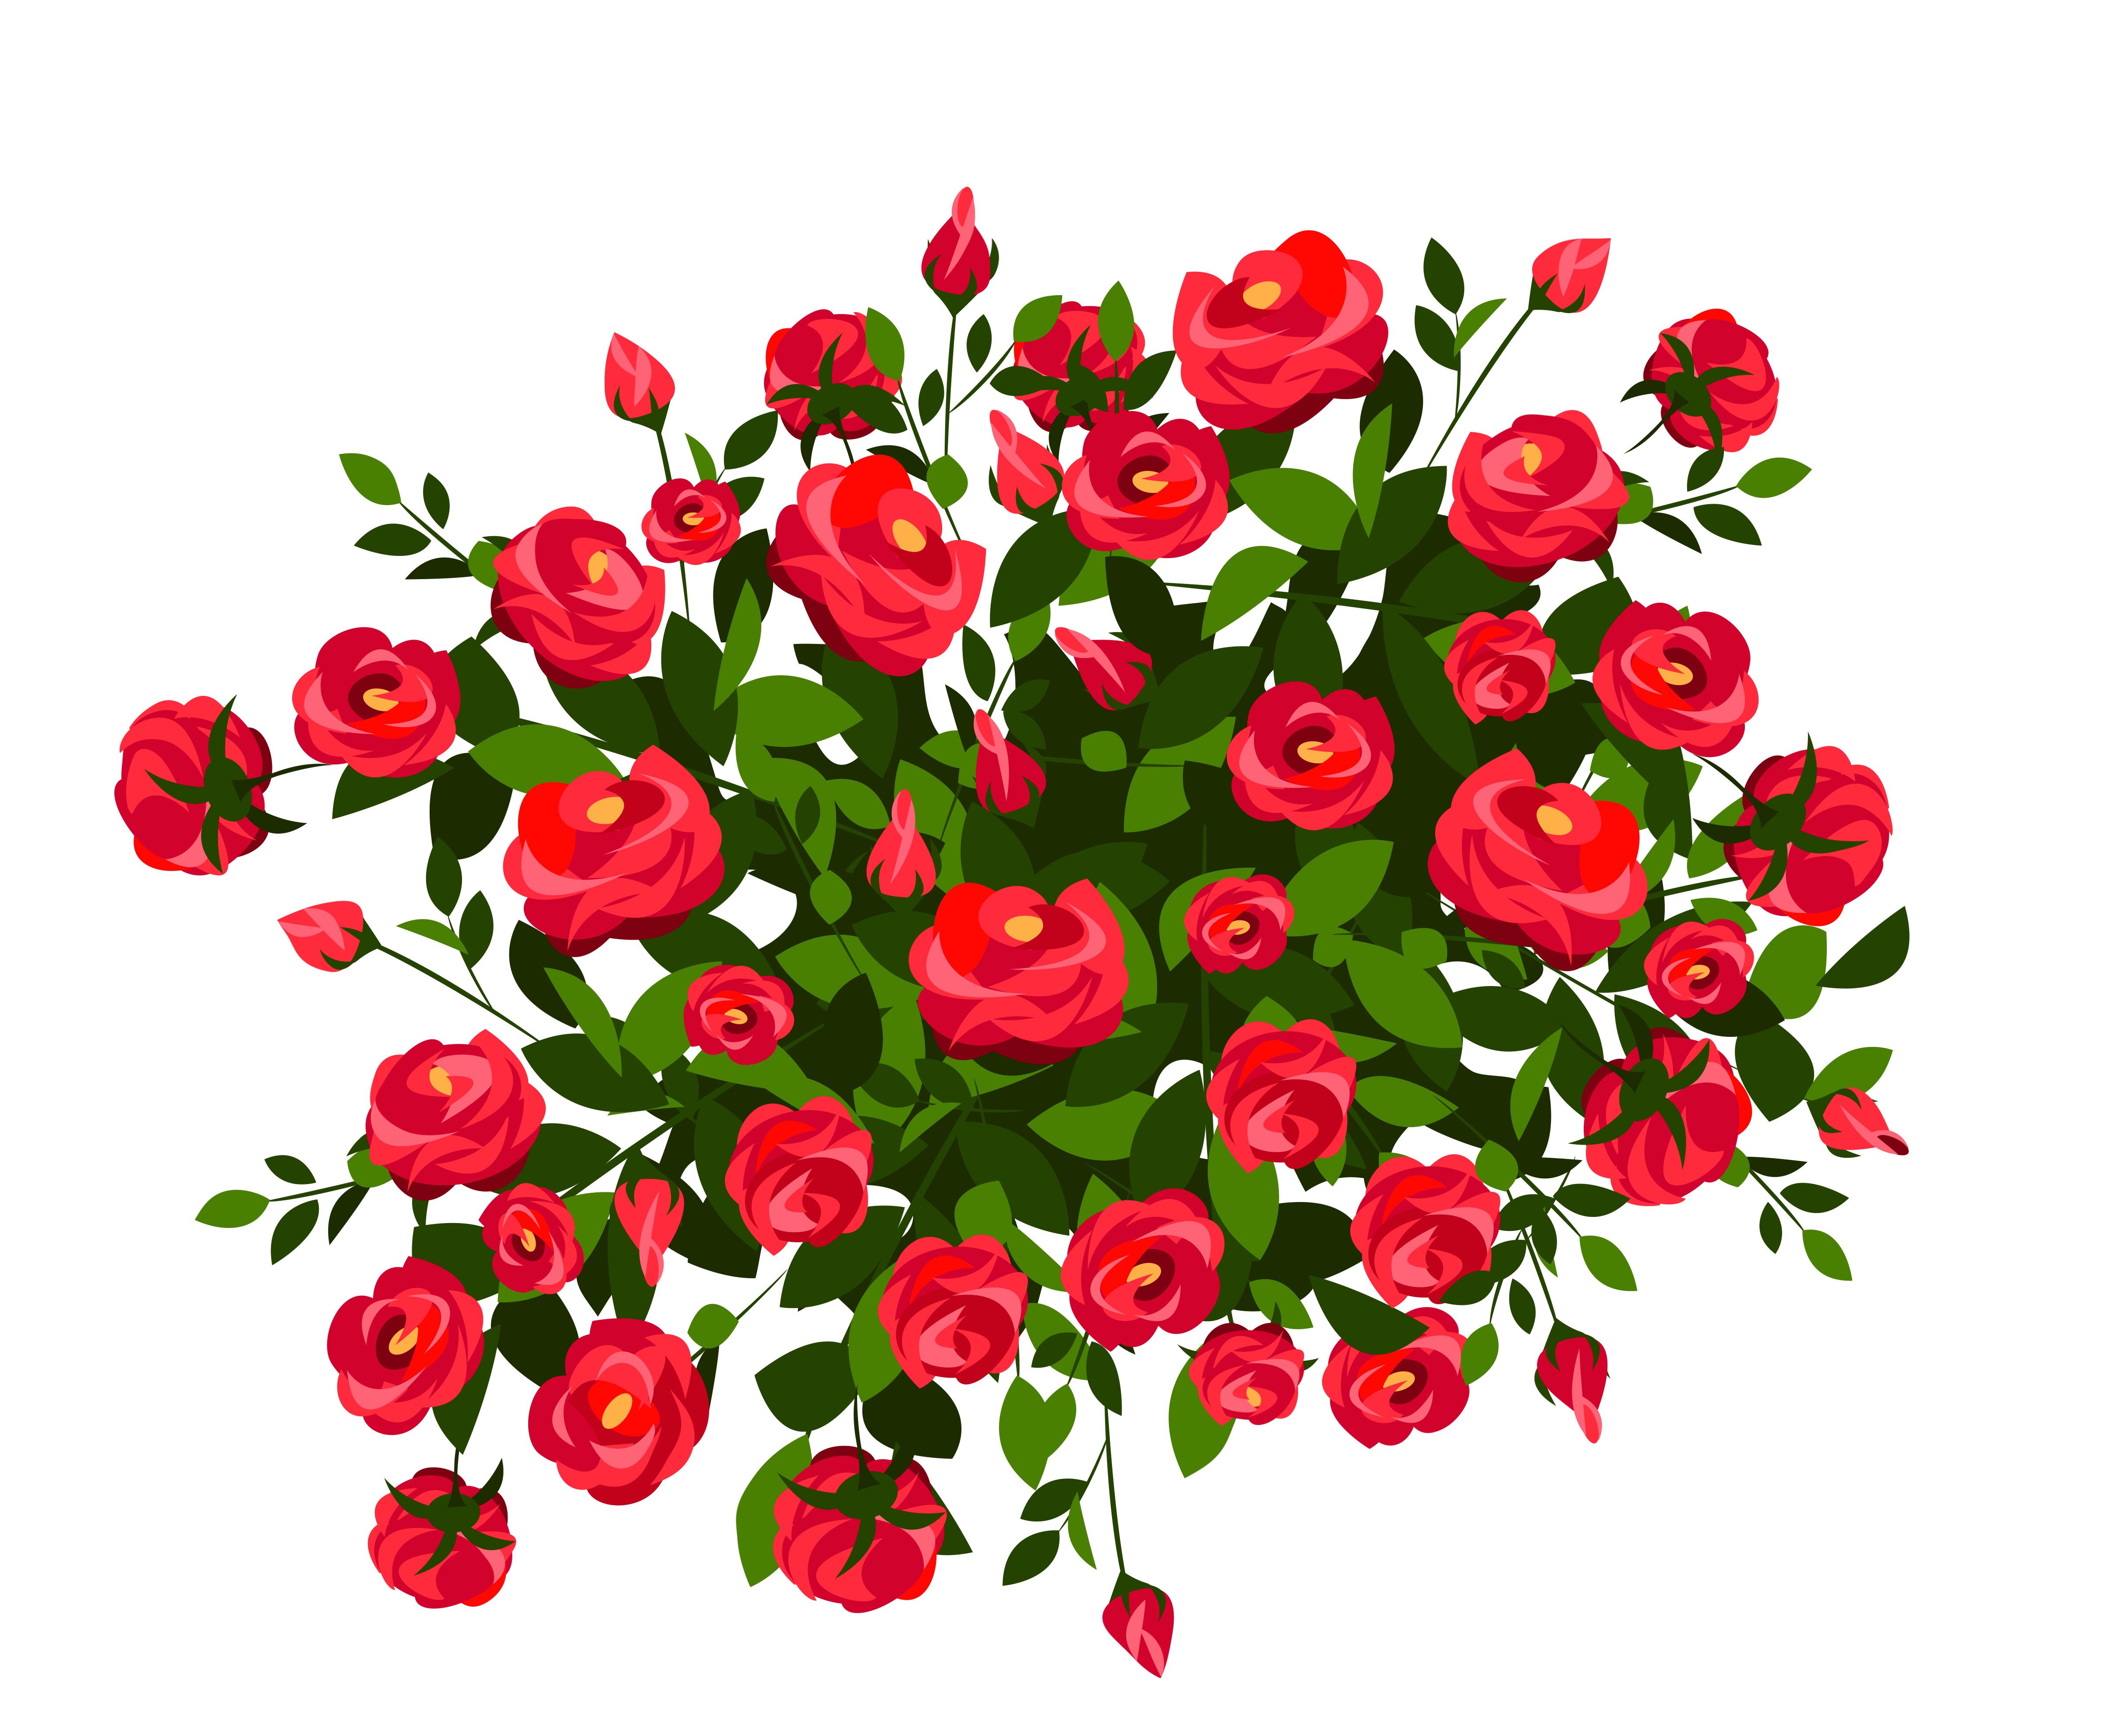 Rose bush png. Red clipart image gallery